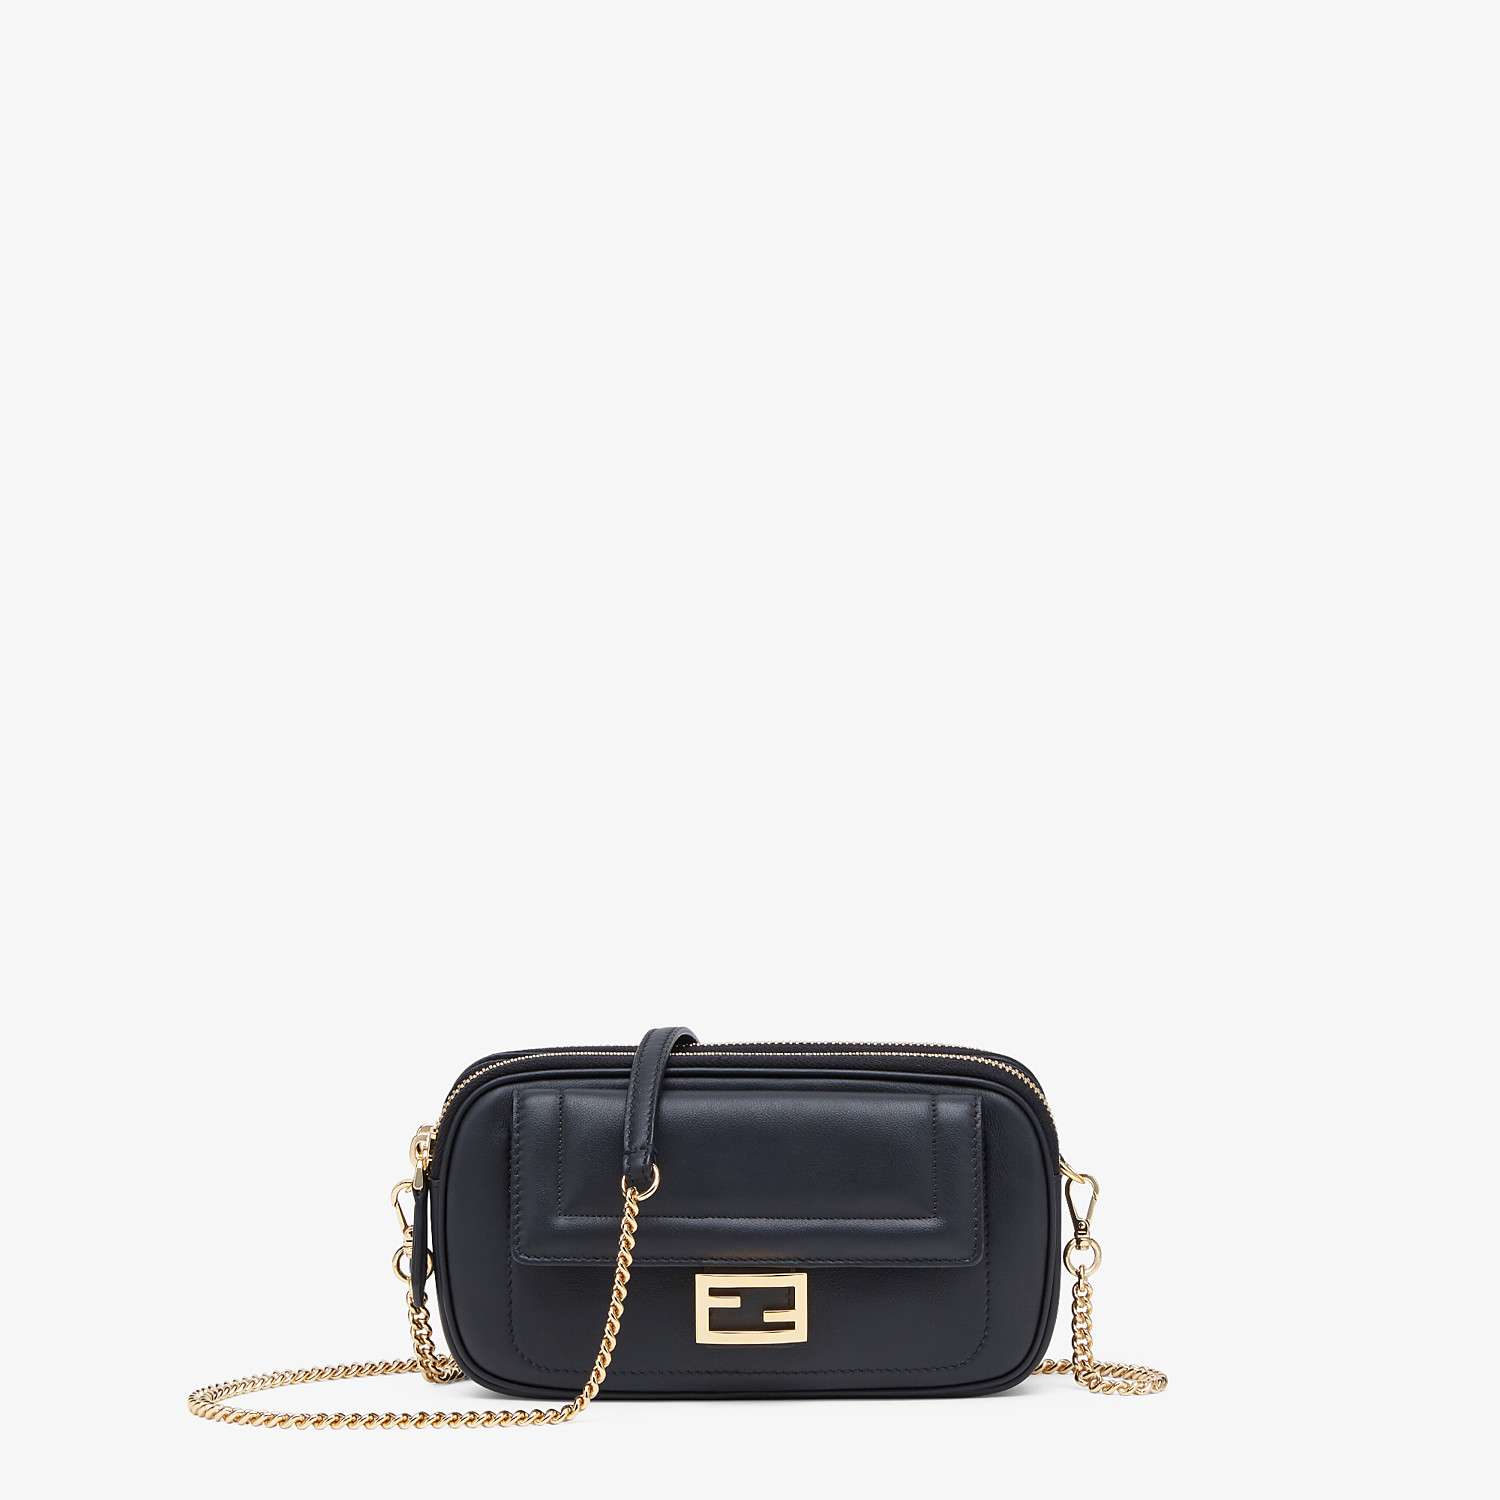 FENDI EASY 2 BAGUETTE - Black leather mini-bag - view 1 detail